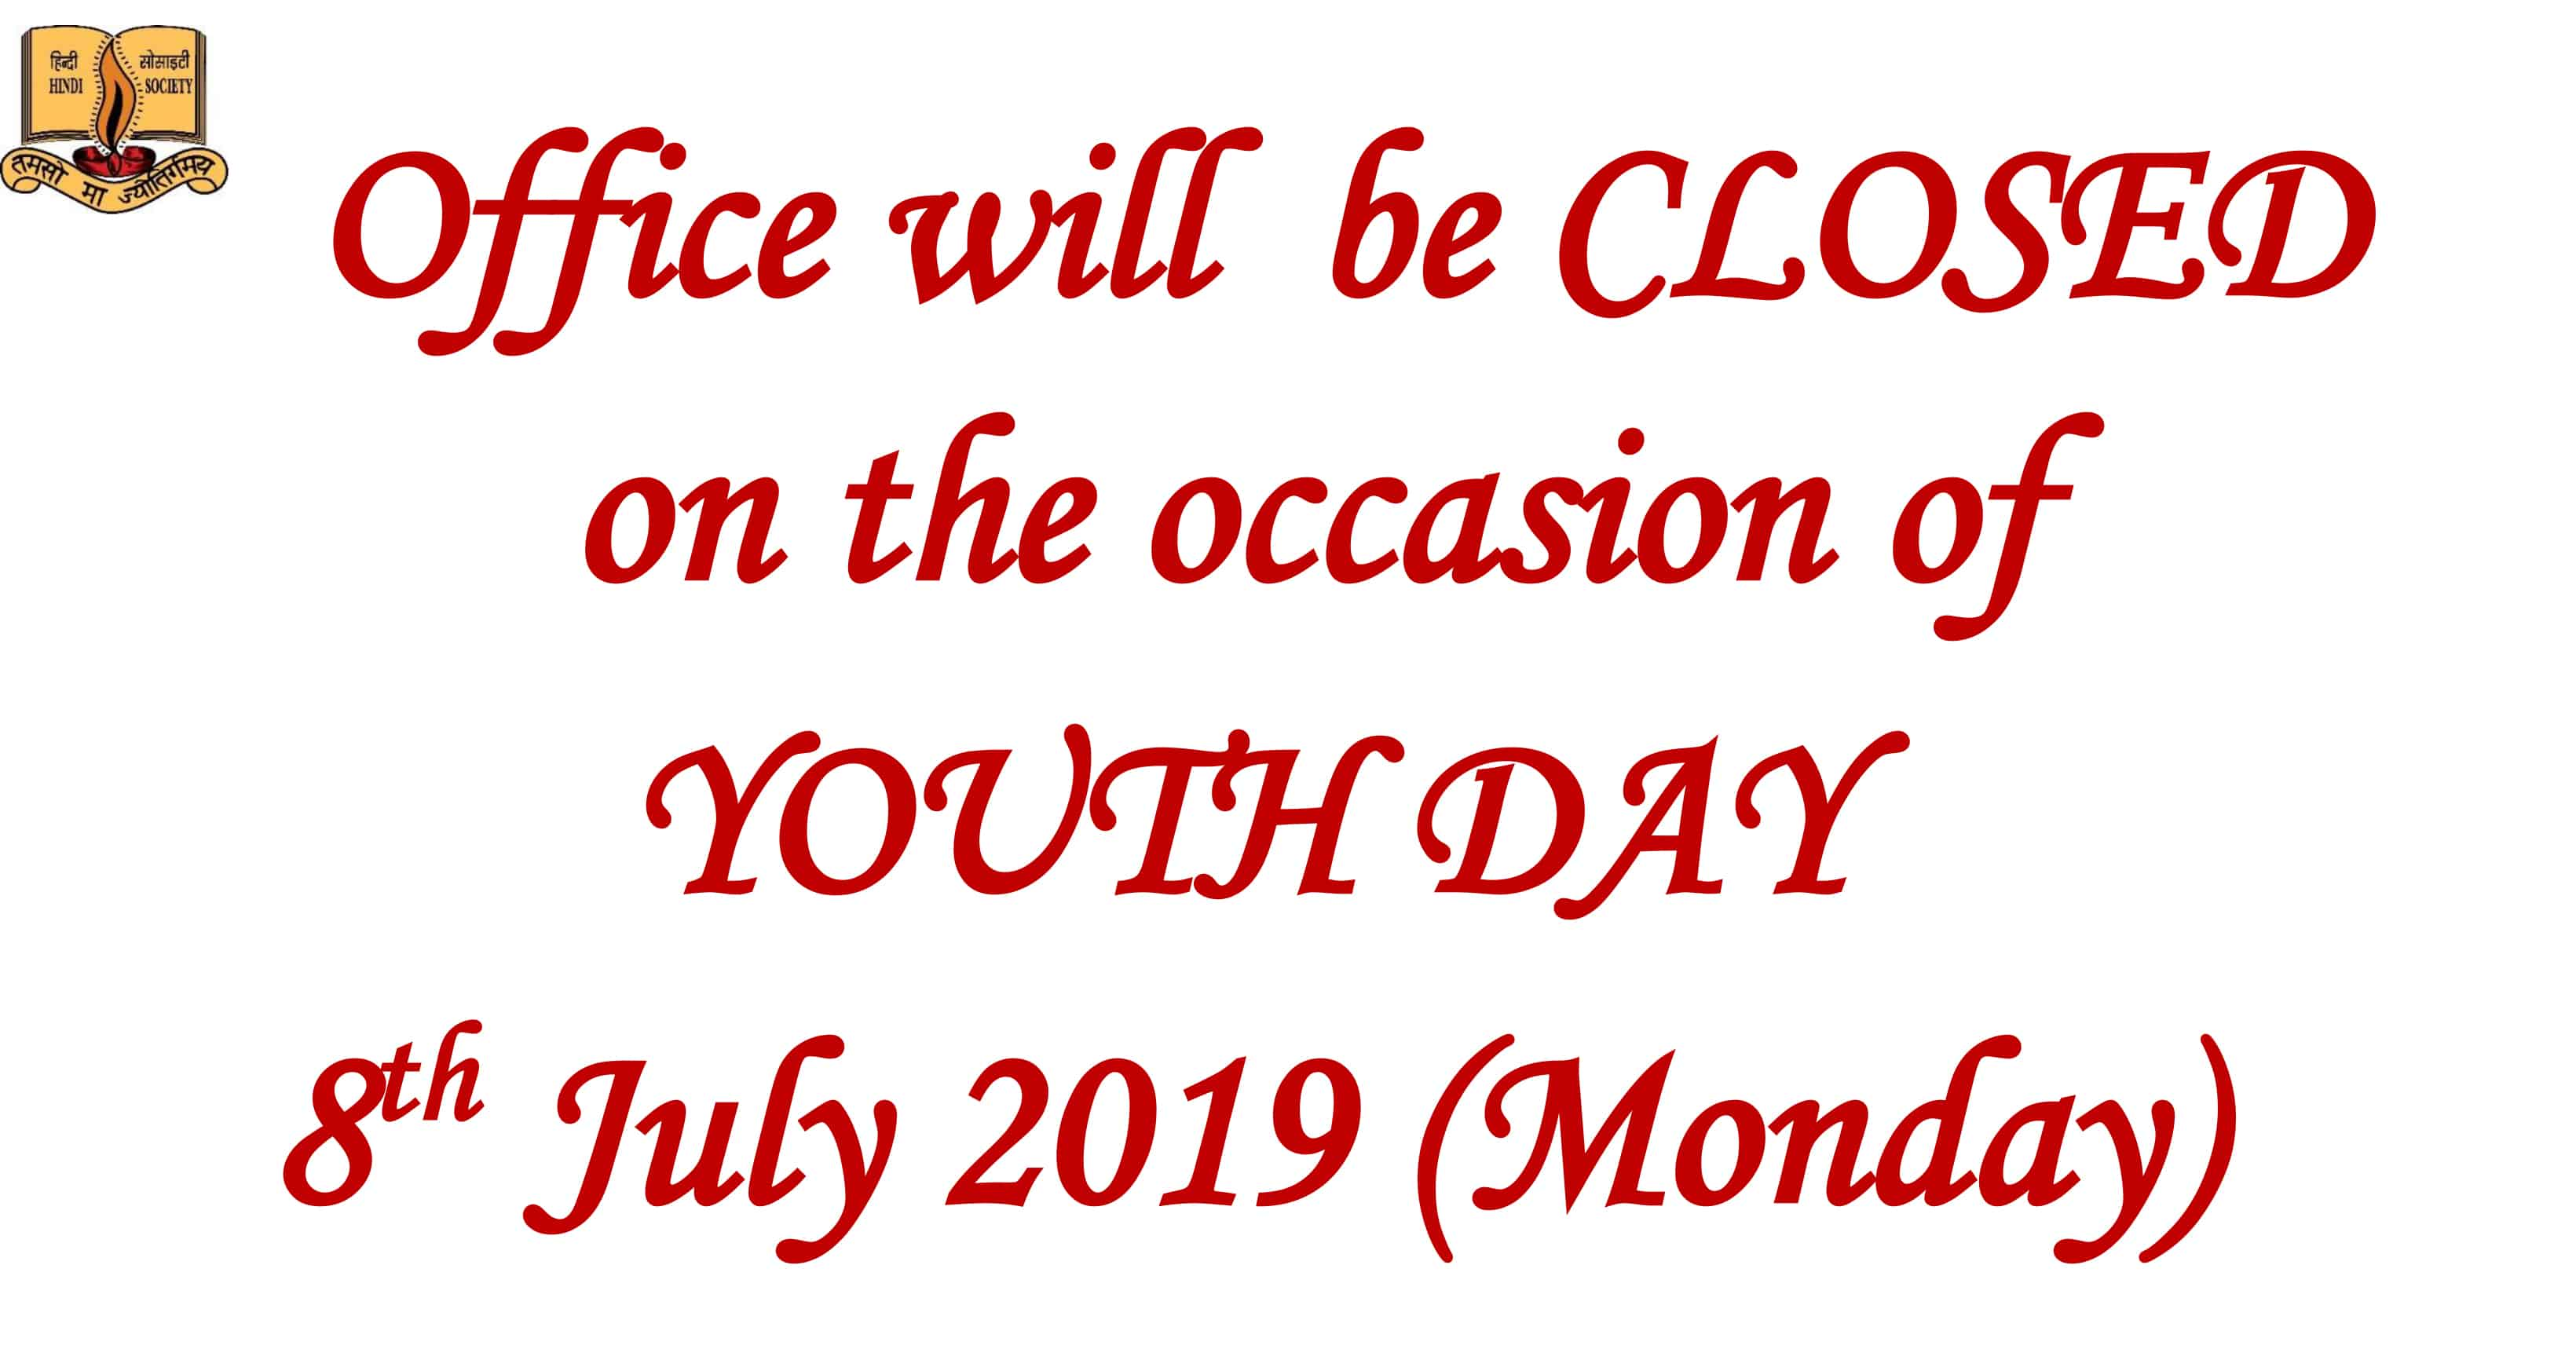 Office will be CLOSED on the occasion of